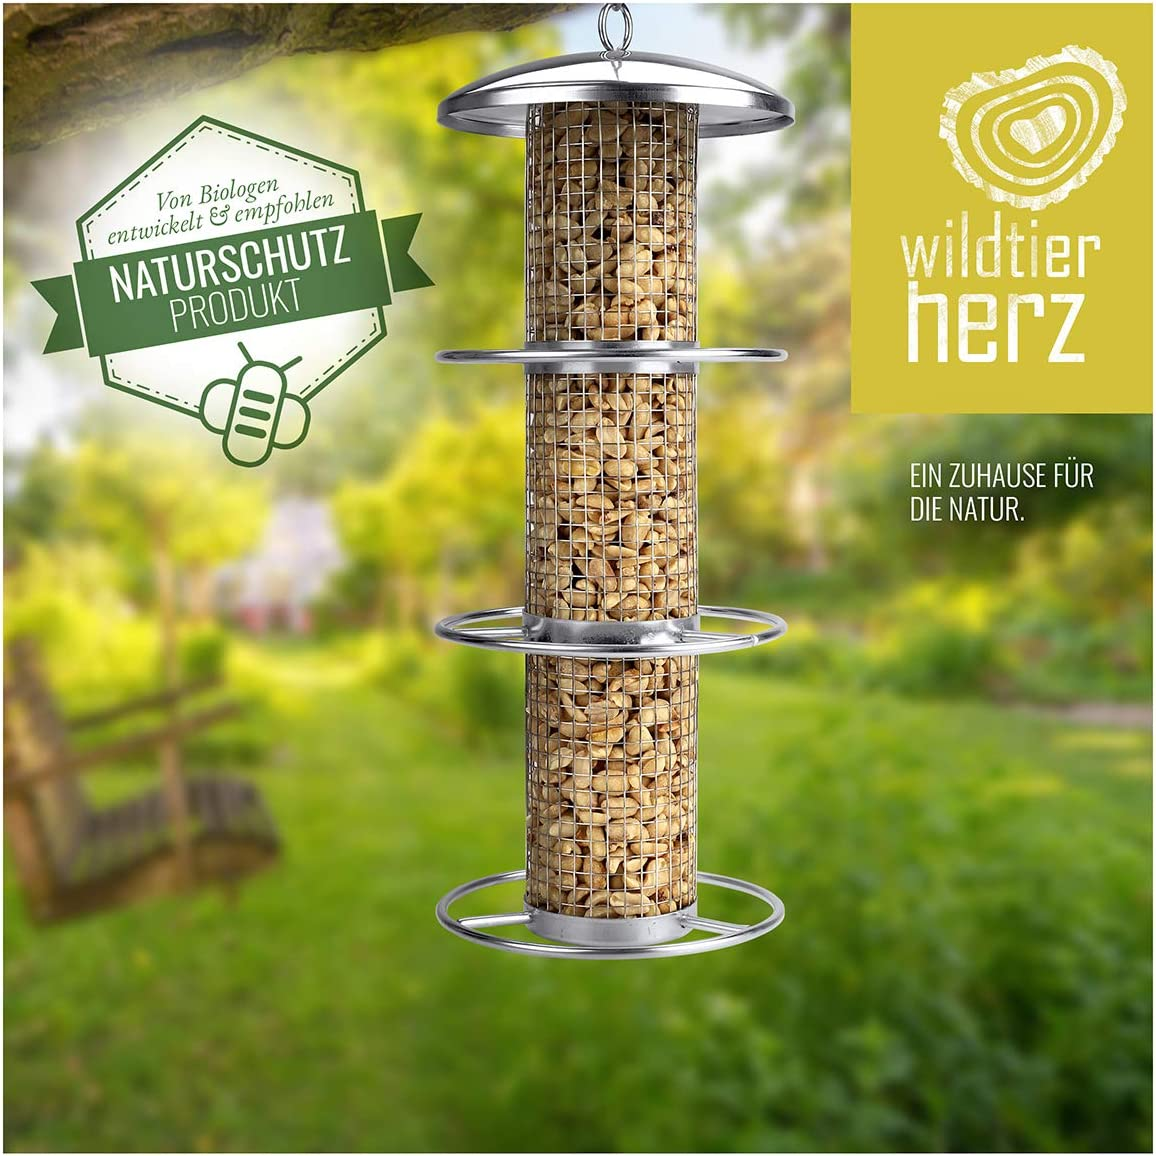 Feeding Station for All Year Round Feeding Wild Birds for Birds with Stainless Steel Grids and Approach Rings Wild Animal Heart Feeder for Bird Feeder Nut Feeder 35cm